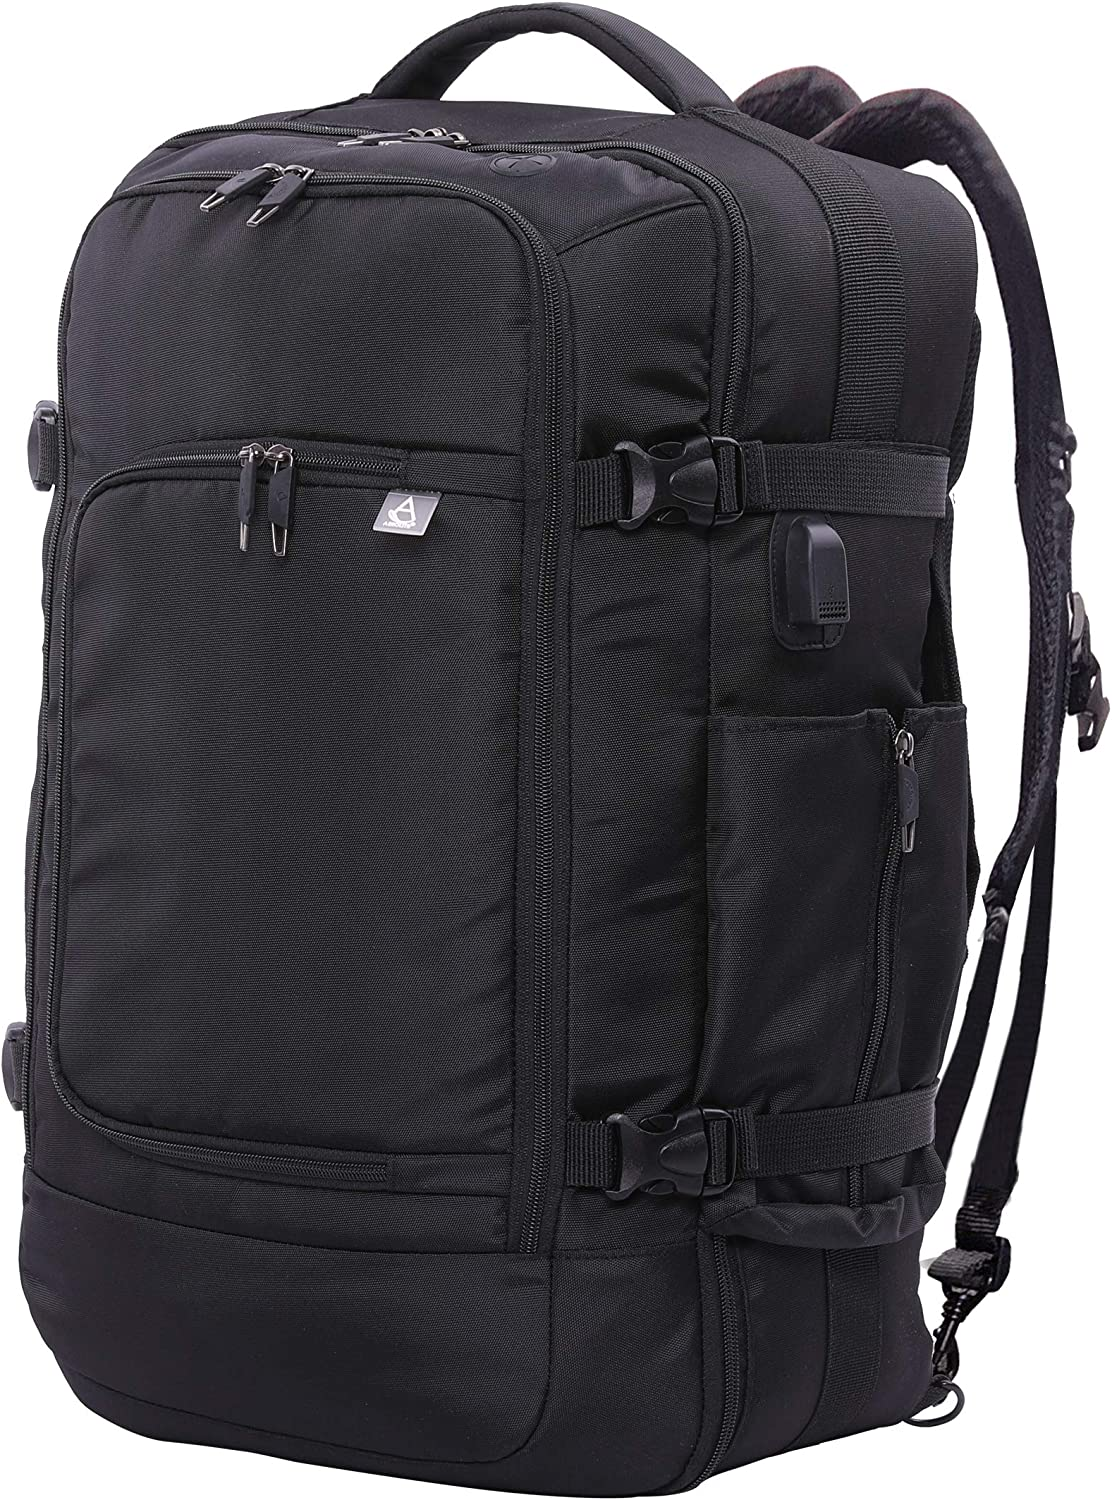 Top 6 Laptop Backpack Kate Spade